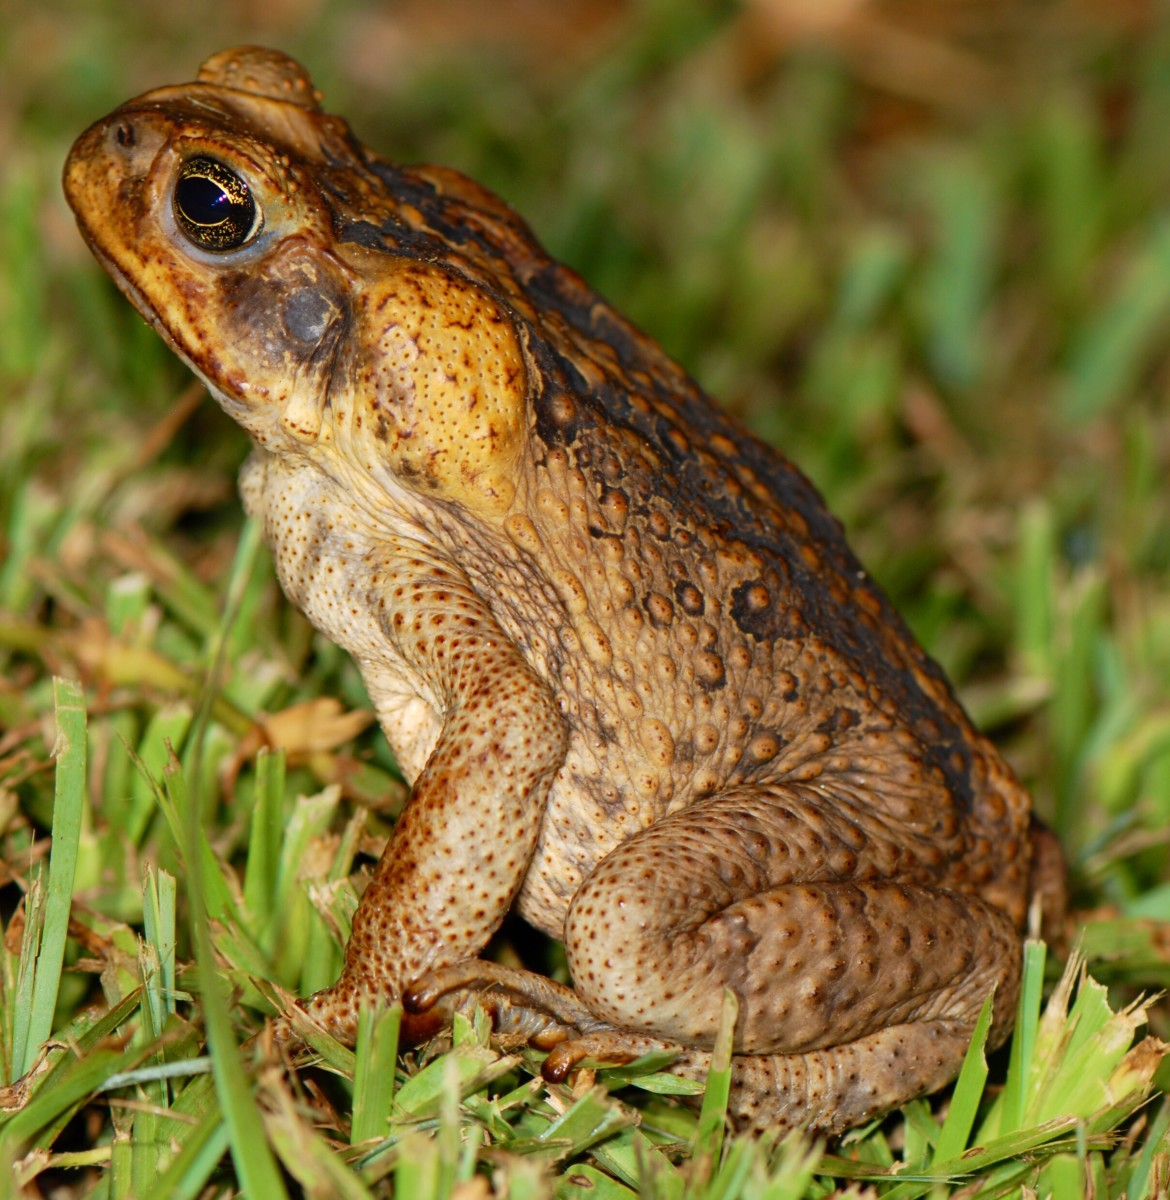 A cane toad, or Bufo marinus